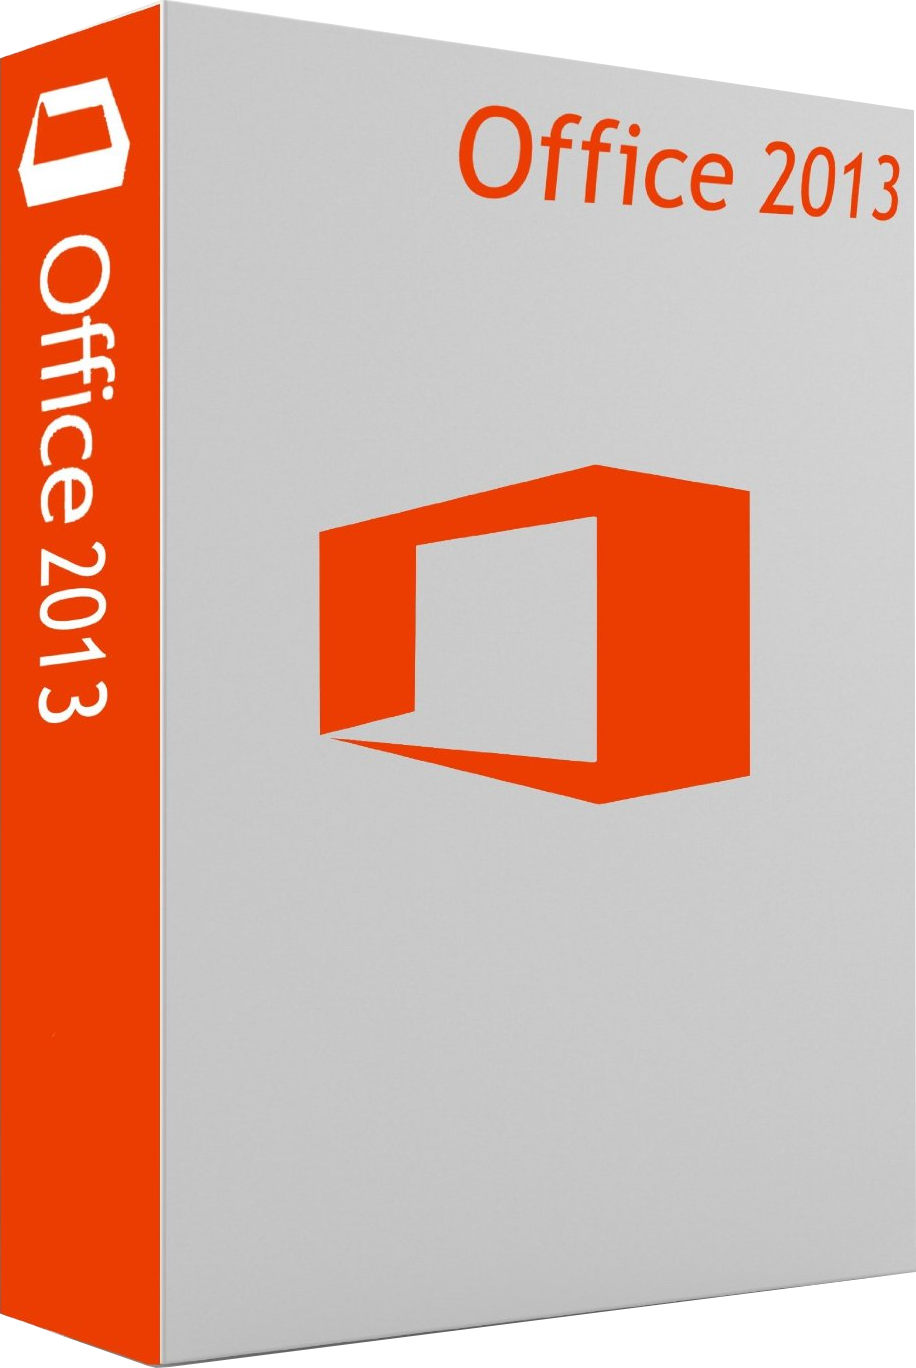 Microsoft Office 2013 Pro Plus Full Version Download (x86/x64)